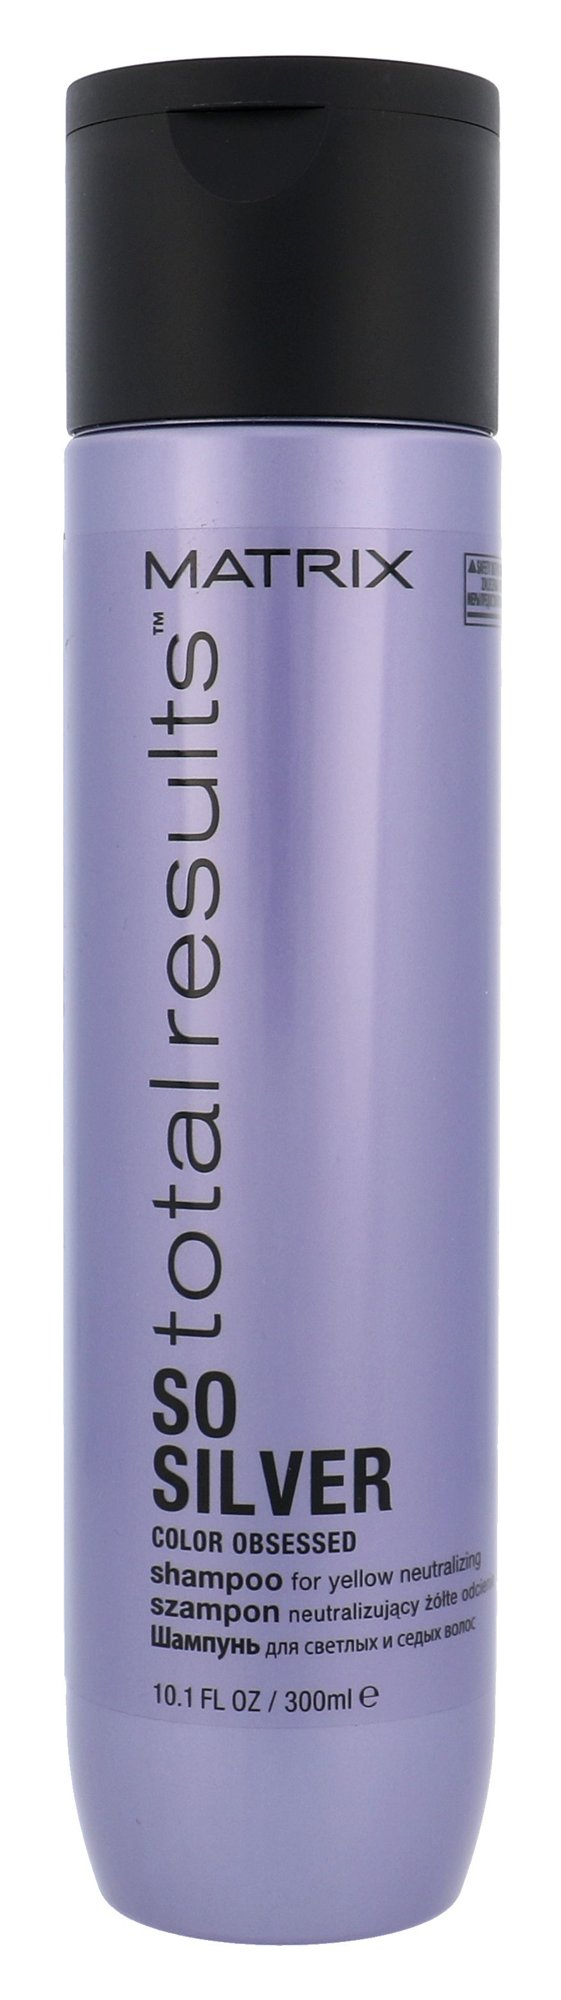 Matrix Total Results So Silver Cosmetic 300ml  Color Obsessed